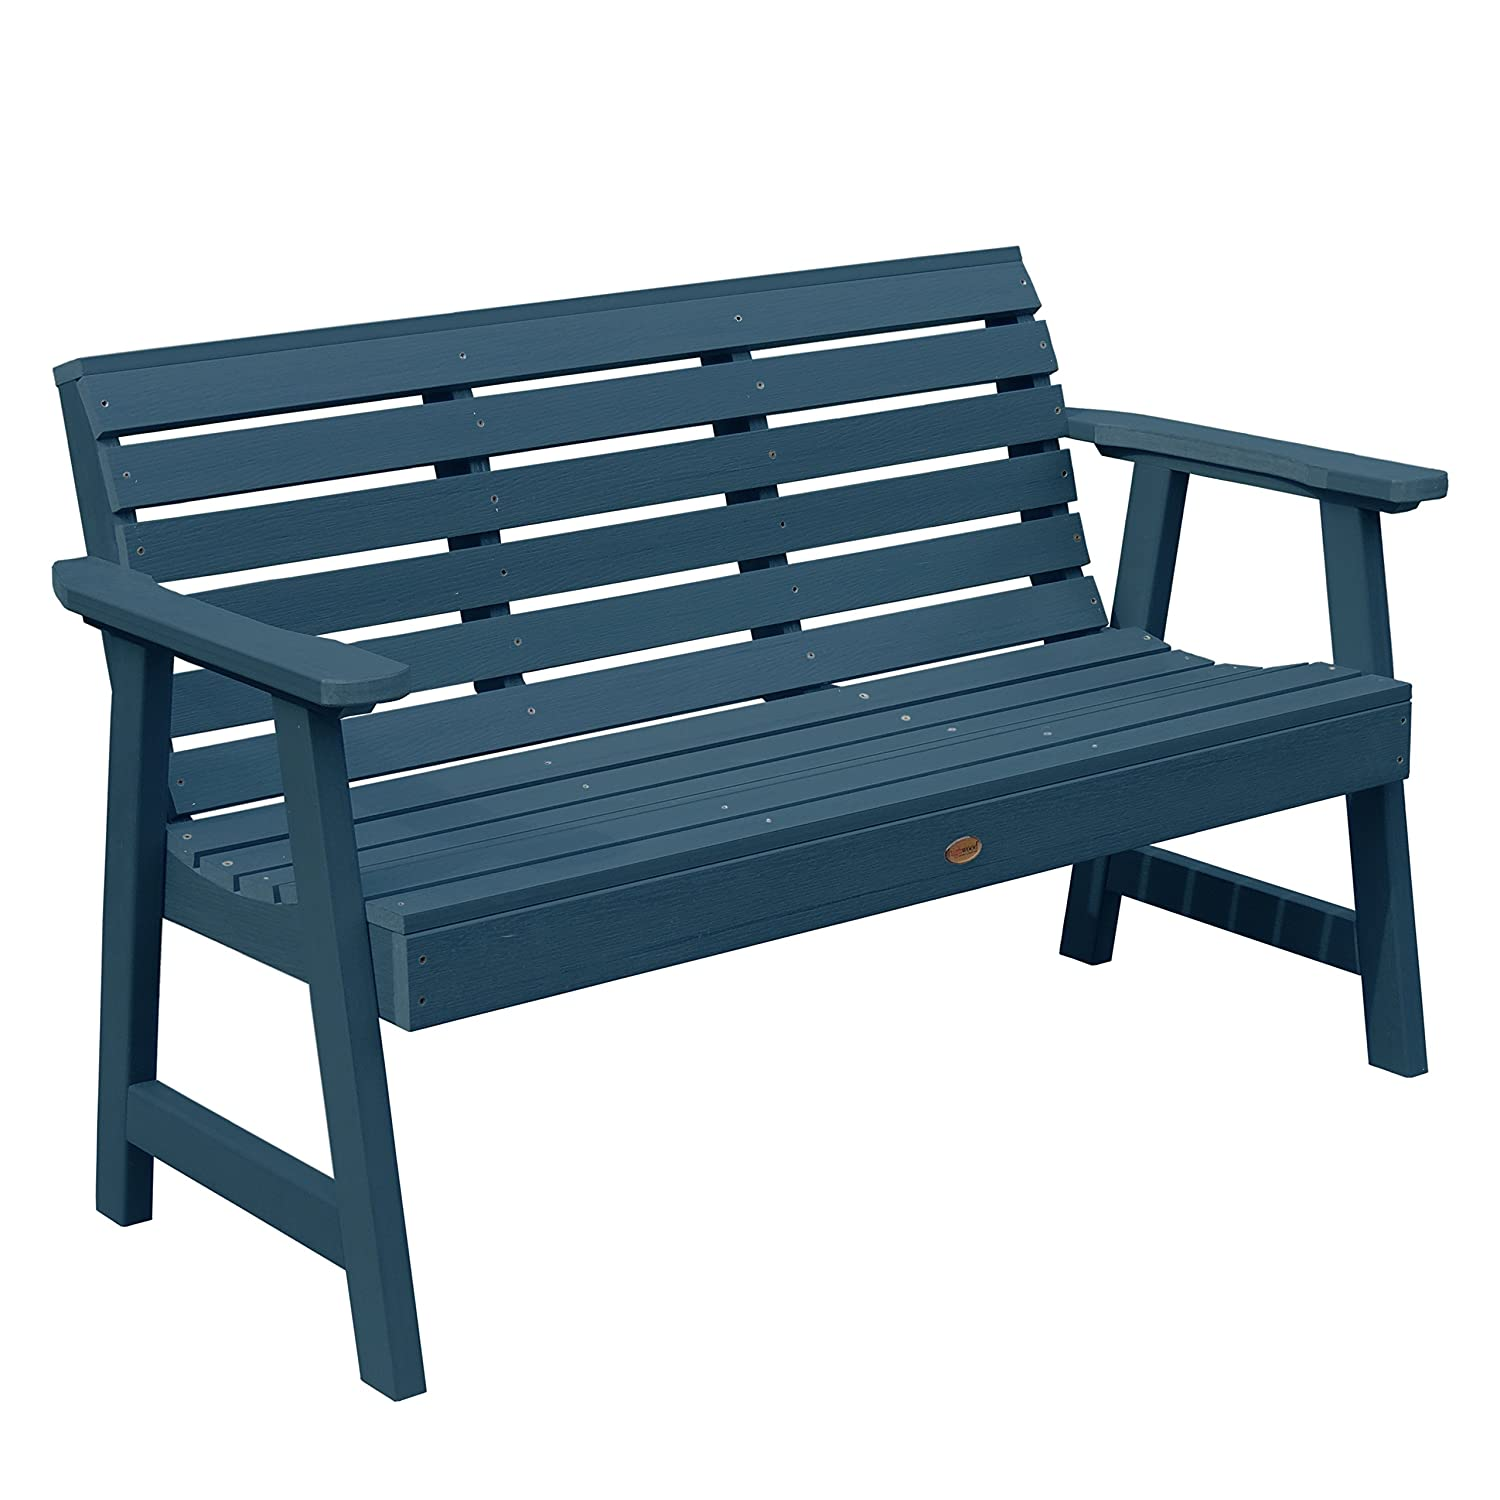 highwood Weatherly Garden Bench, 4 Feet, Nantucket Blue